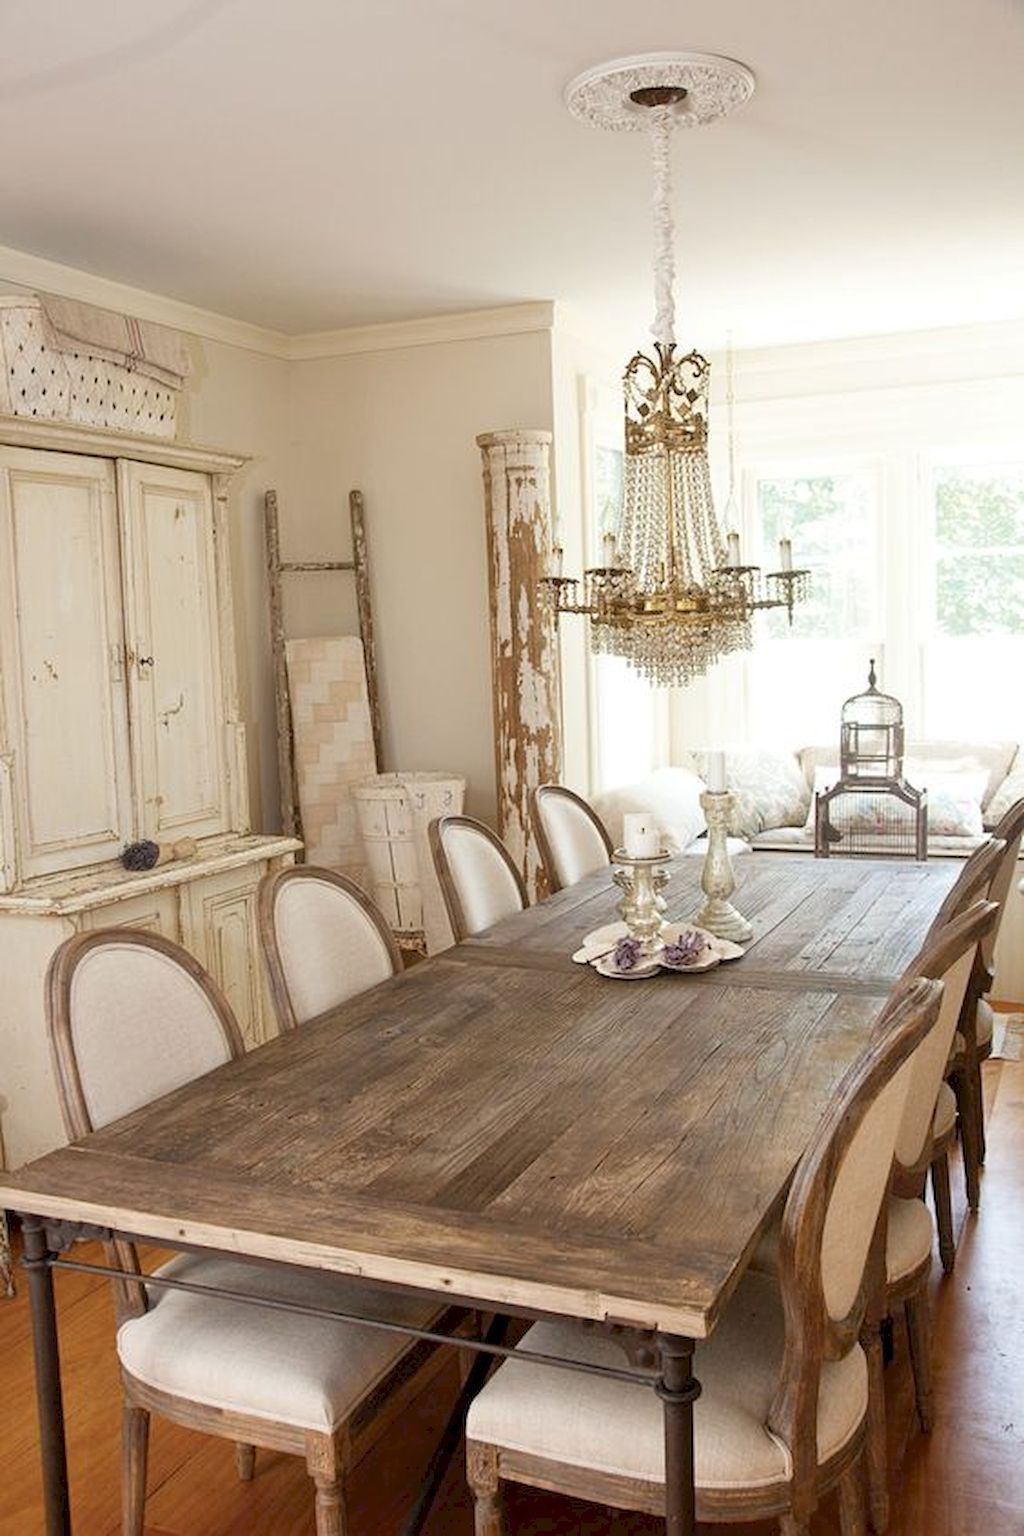 Merveilleux Gorgeous 50+ Vintage Dining Room Lighting Ideas Https://roomaholic.com/